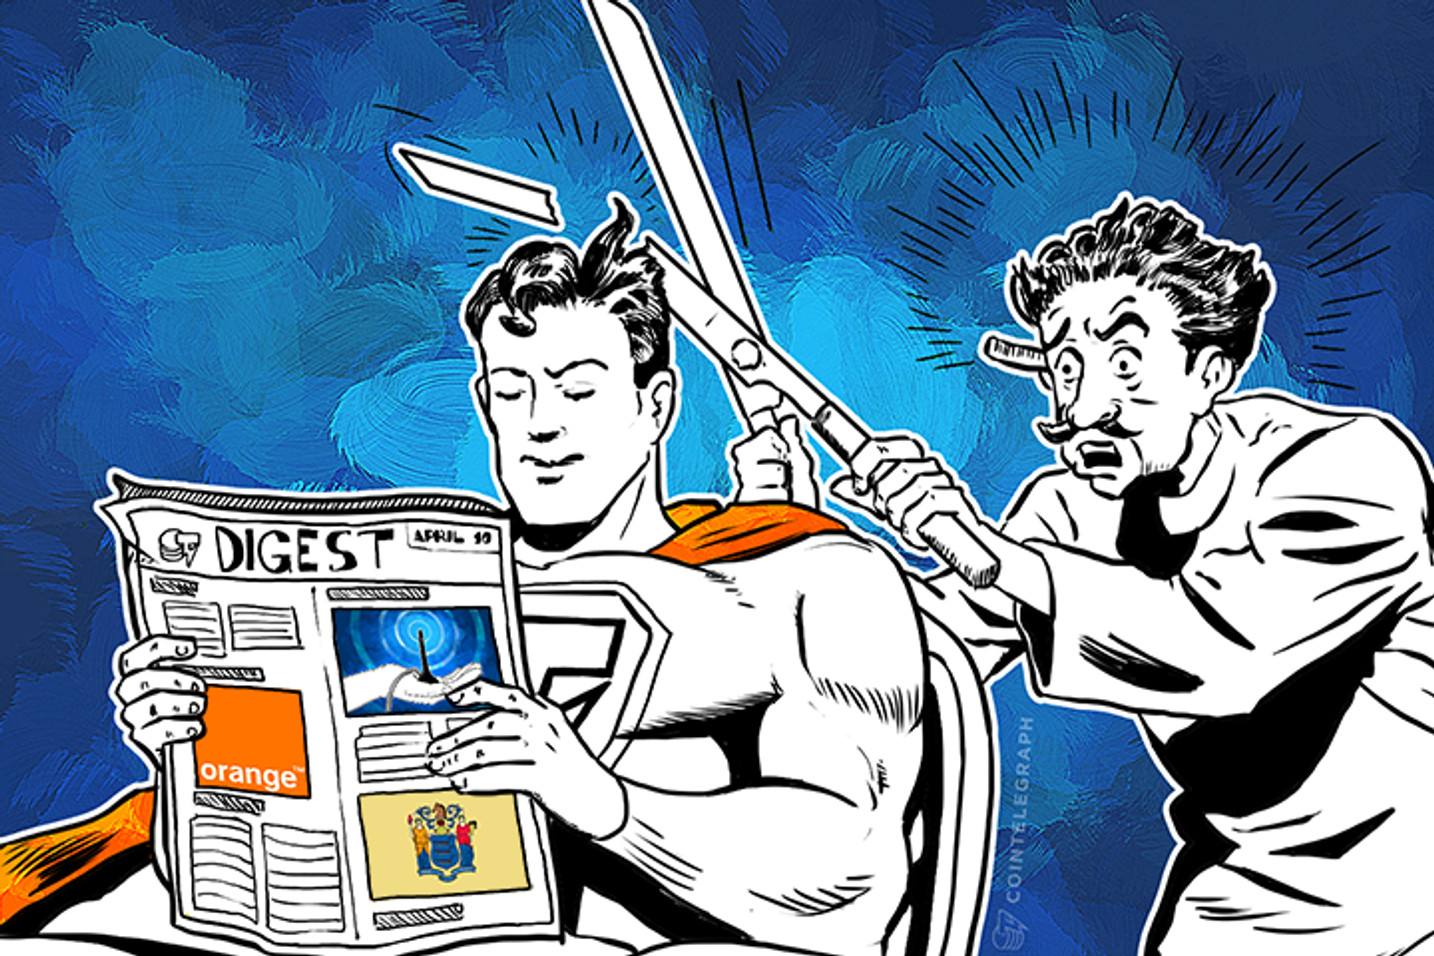 APR 10 DIGEST: New Jersey Set to Tax Bitcoin, Mobile Giant Orange Investing in Digital Currency